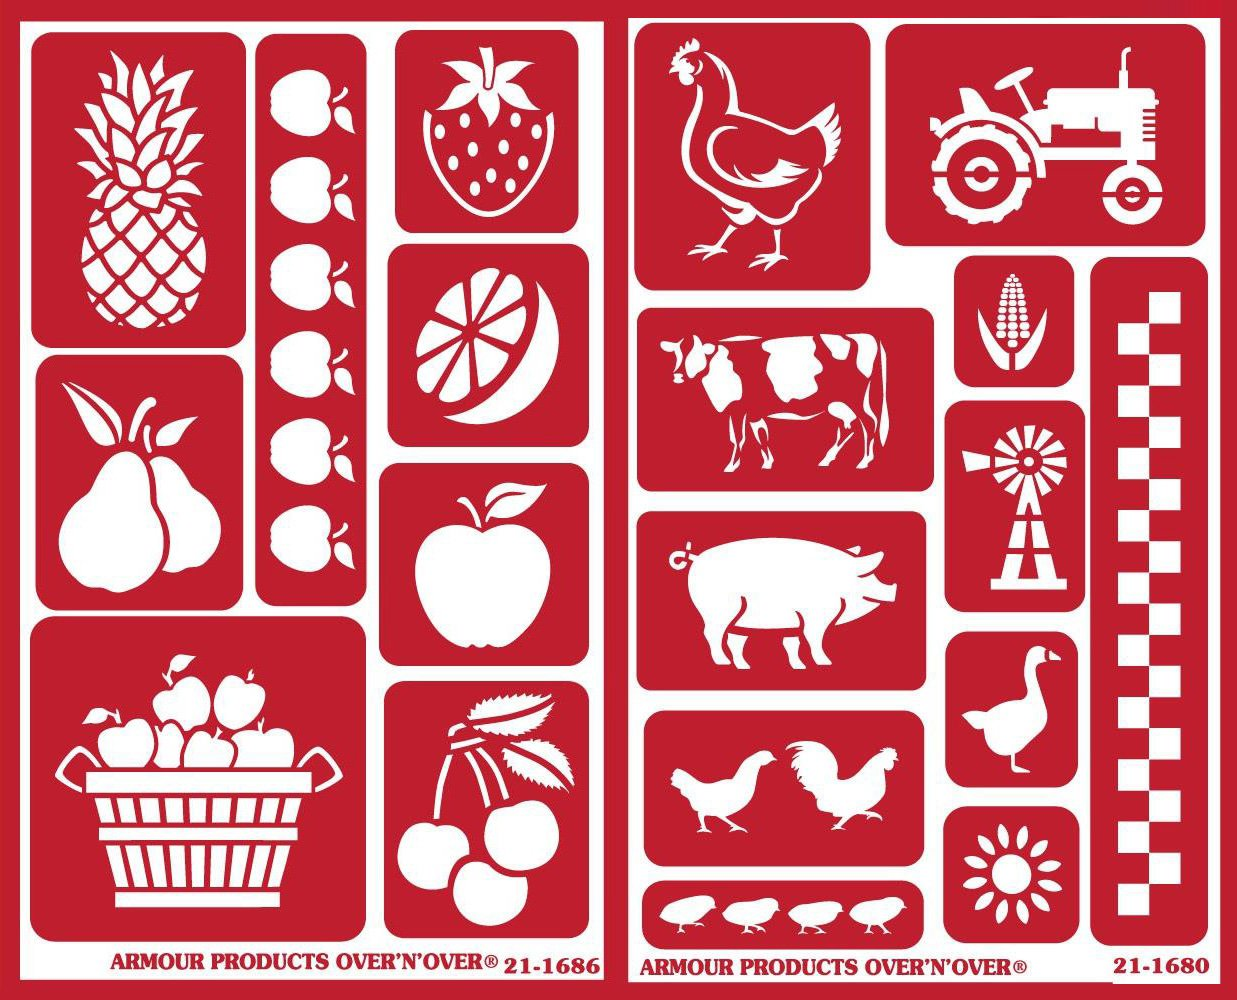 Over 'n' Over Reusable Self-Stick Etching Stencil for Glass (Or Stamping) - Bundle of Two Sets - Farm to Table: Tutti Frutti and Farm Friends Armour Products 4336975428